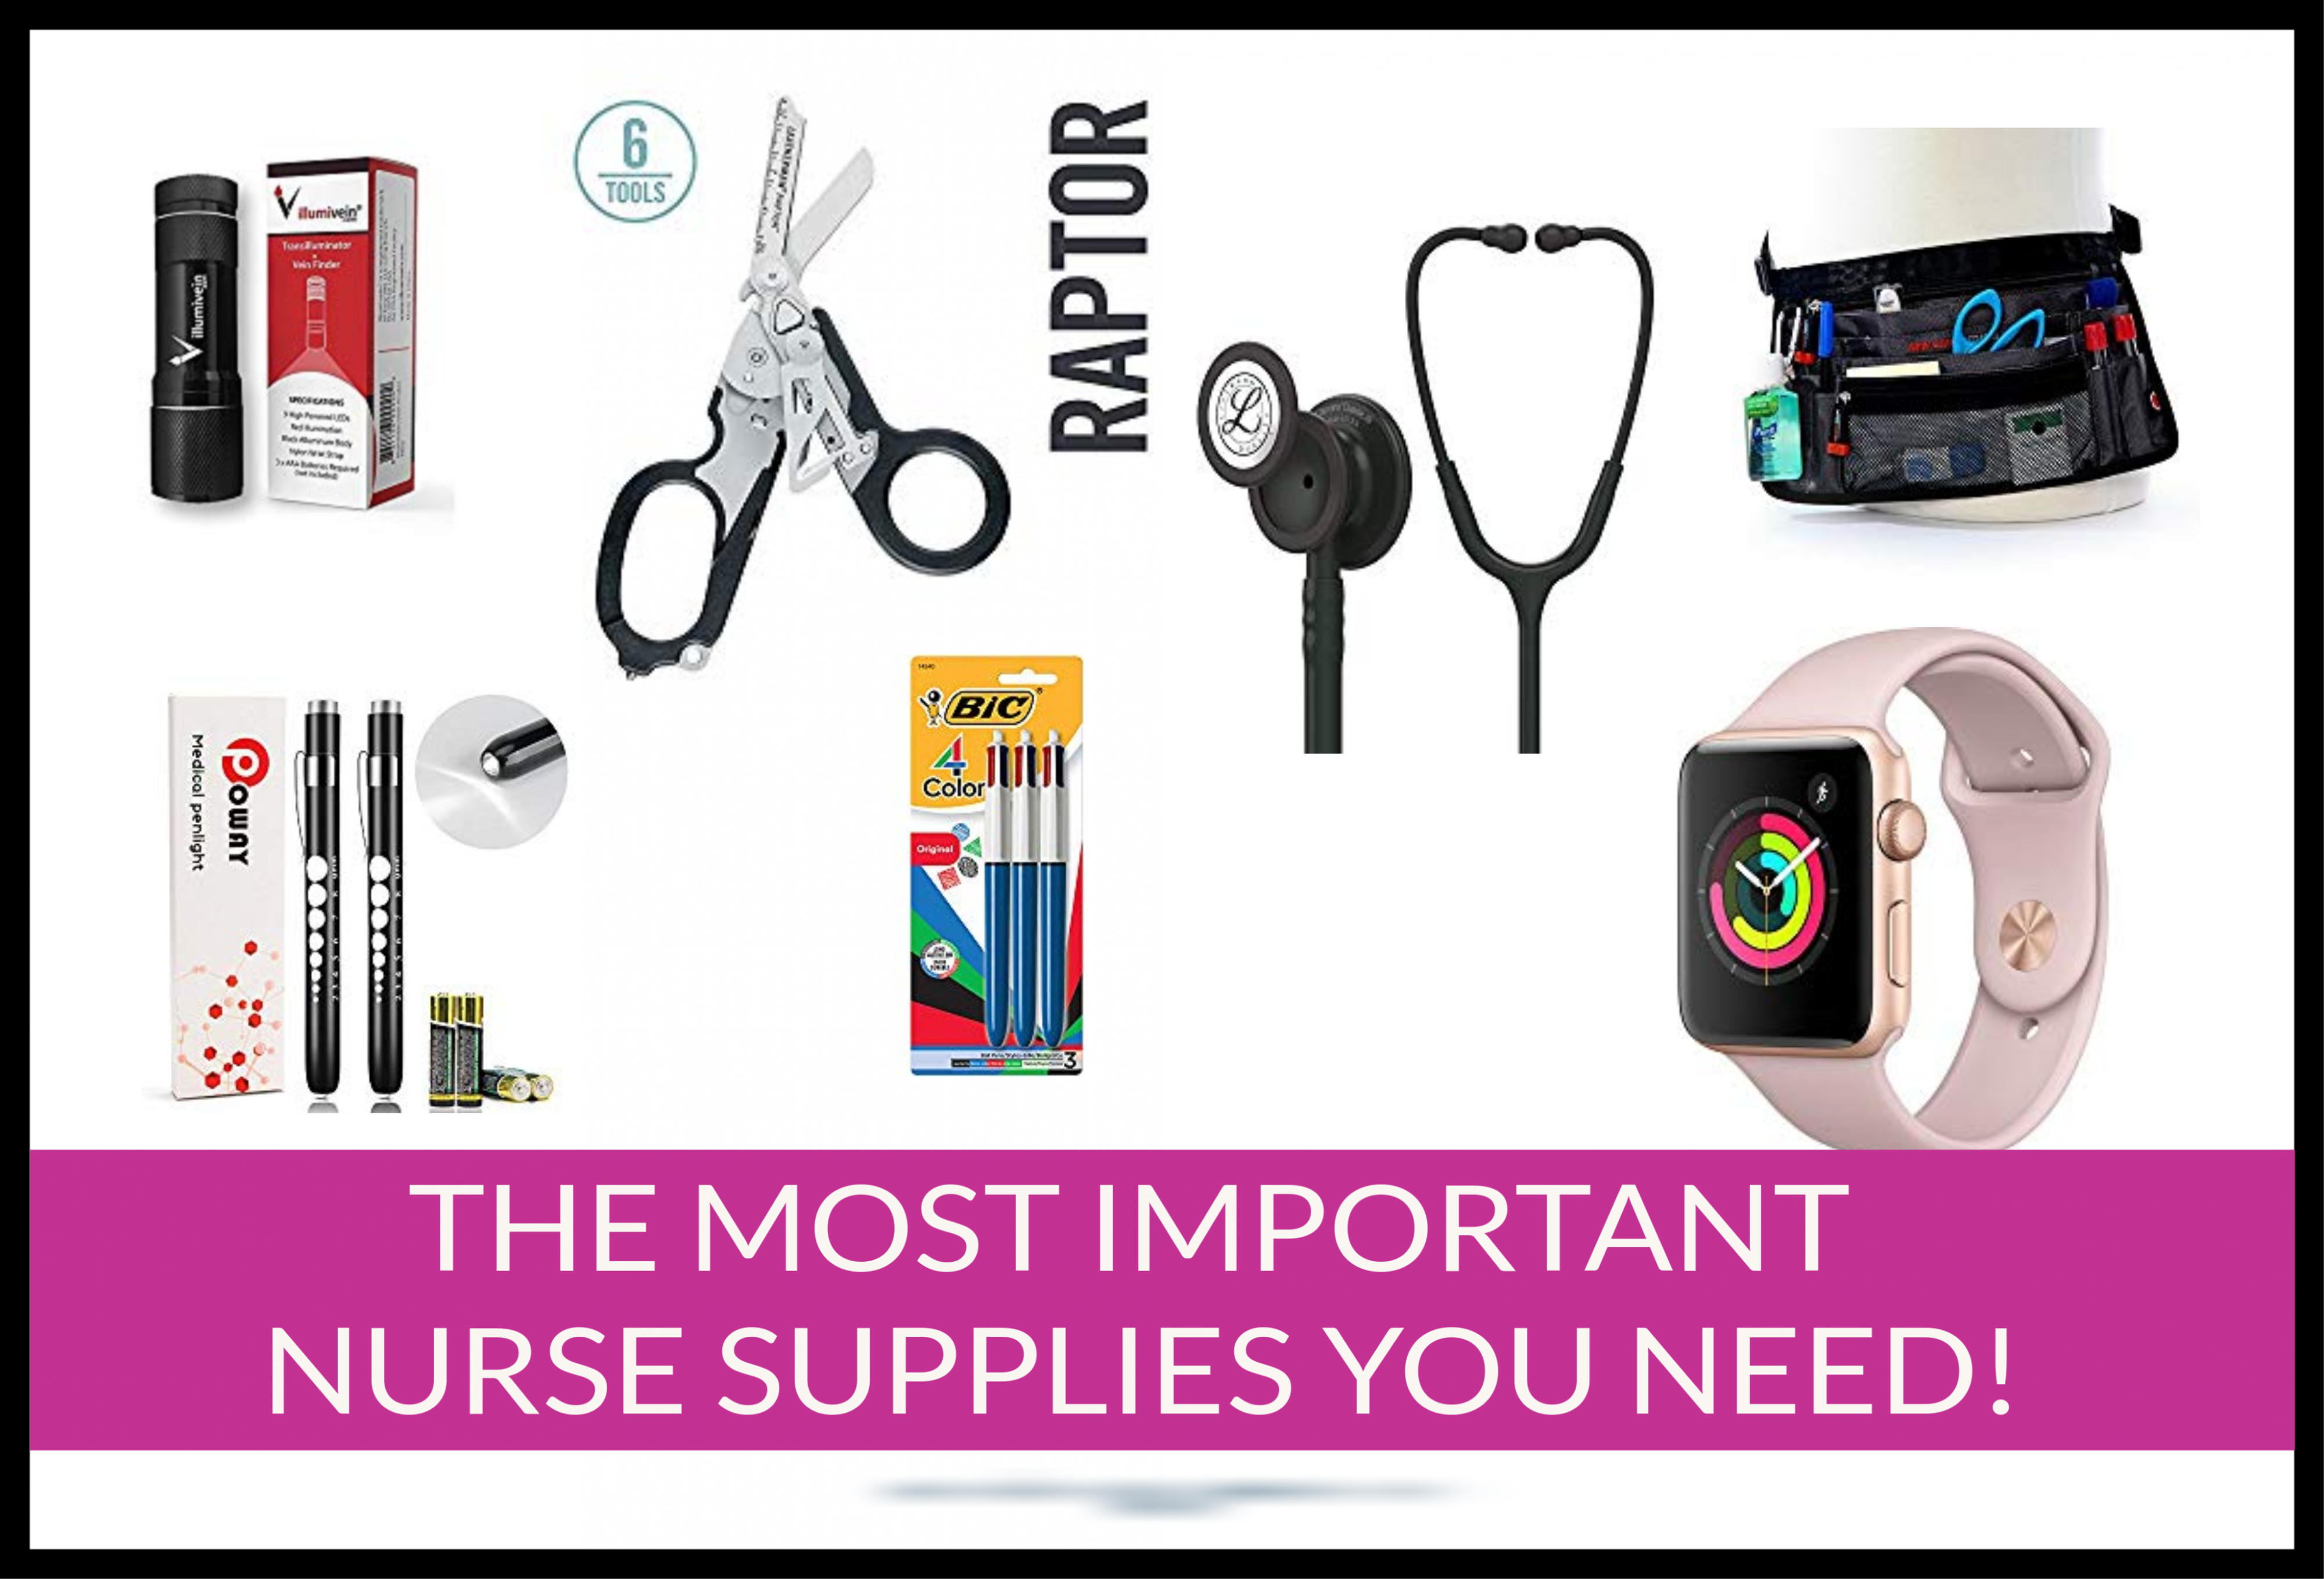 The most important nurse supplies you need as a nurse